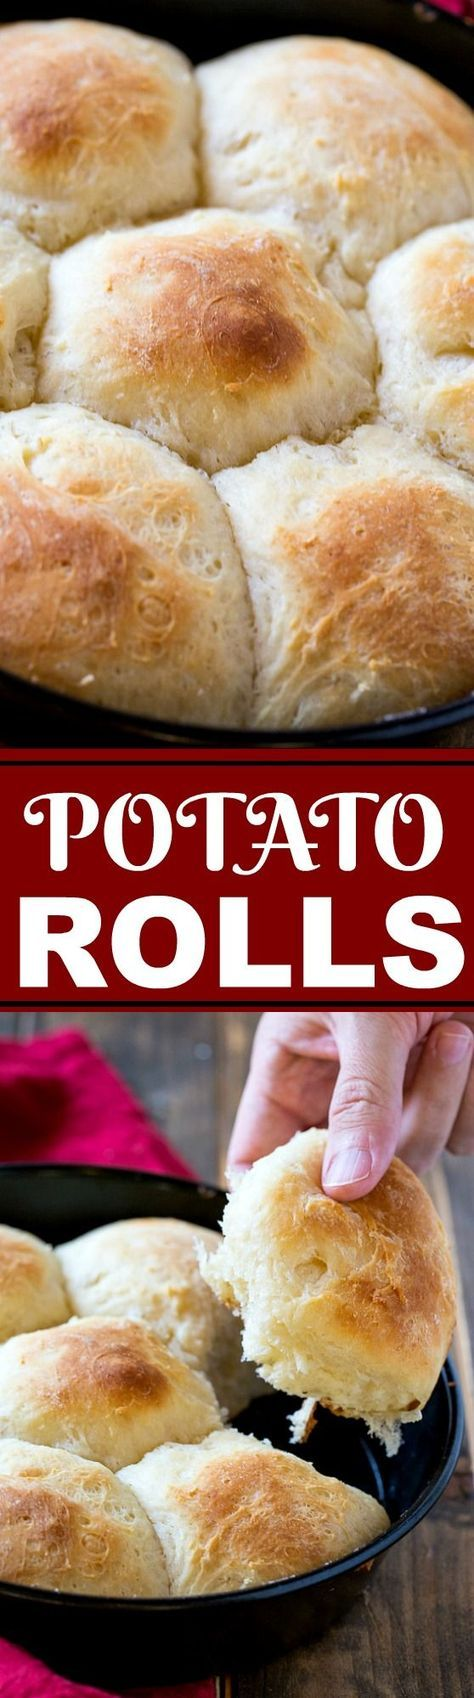 These Potato Rolls are made from leftover mashed potatoes.